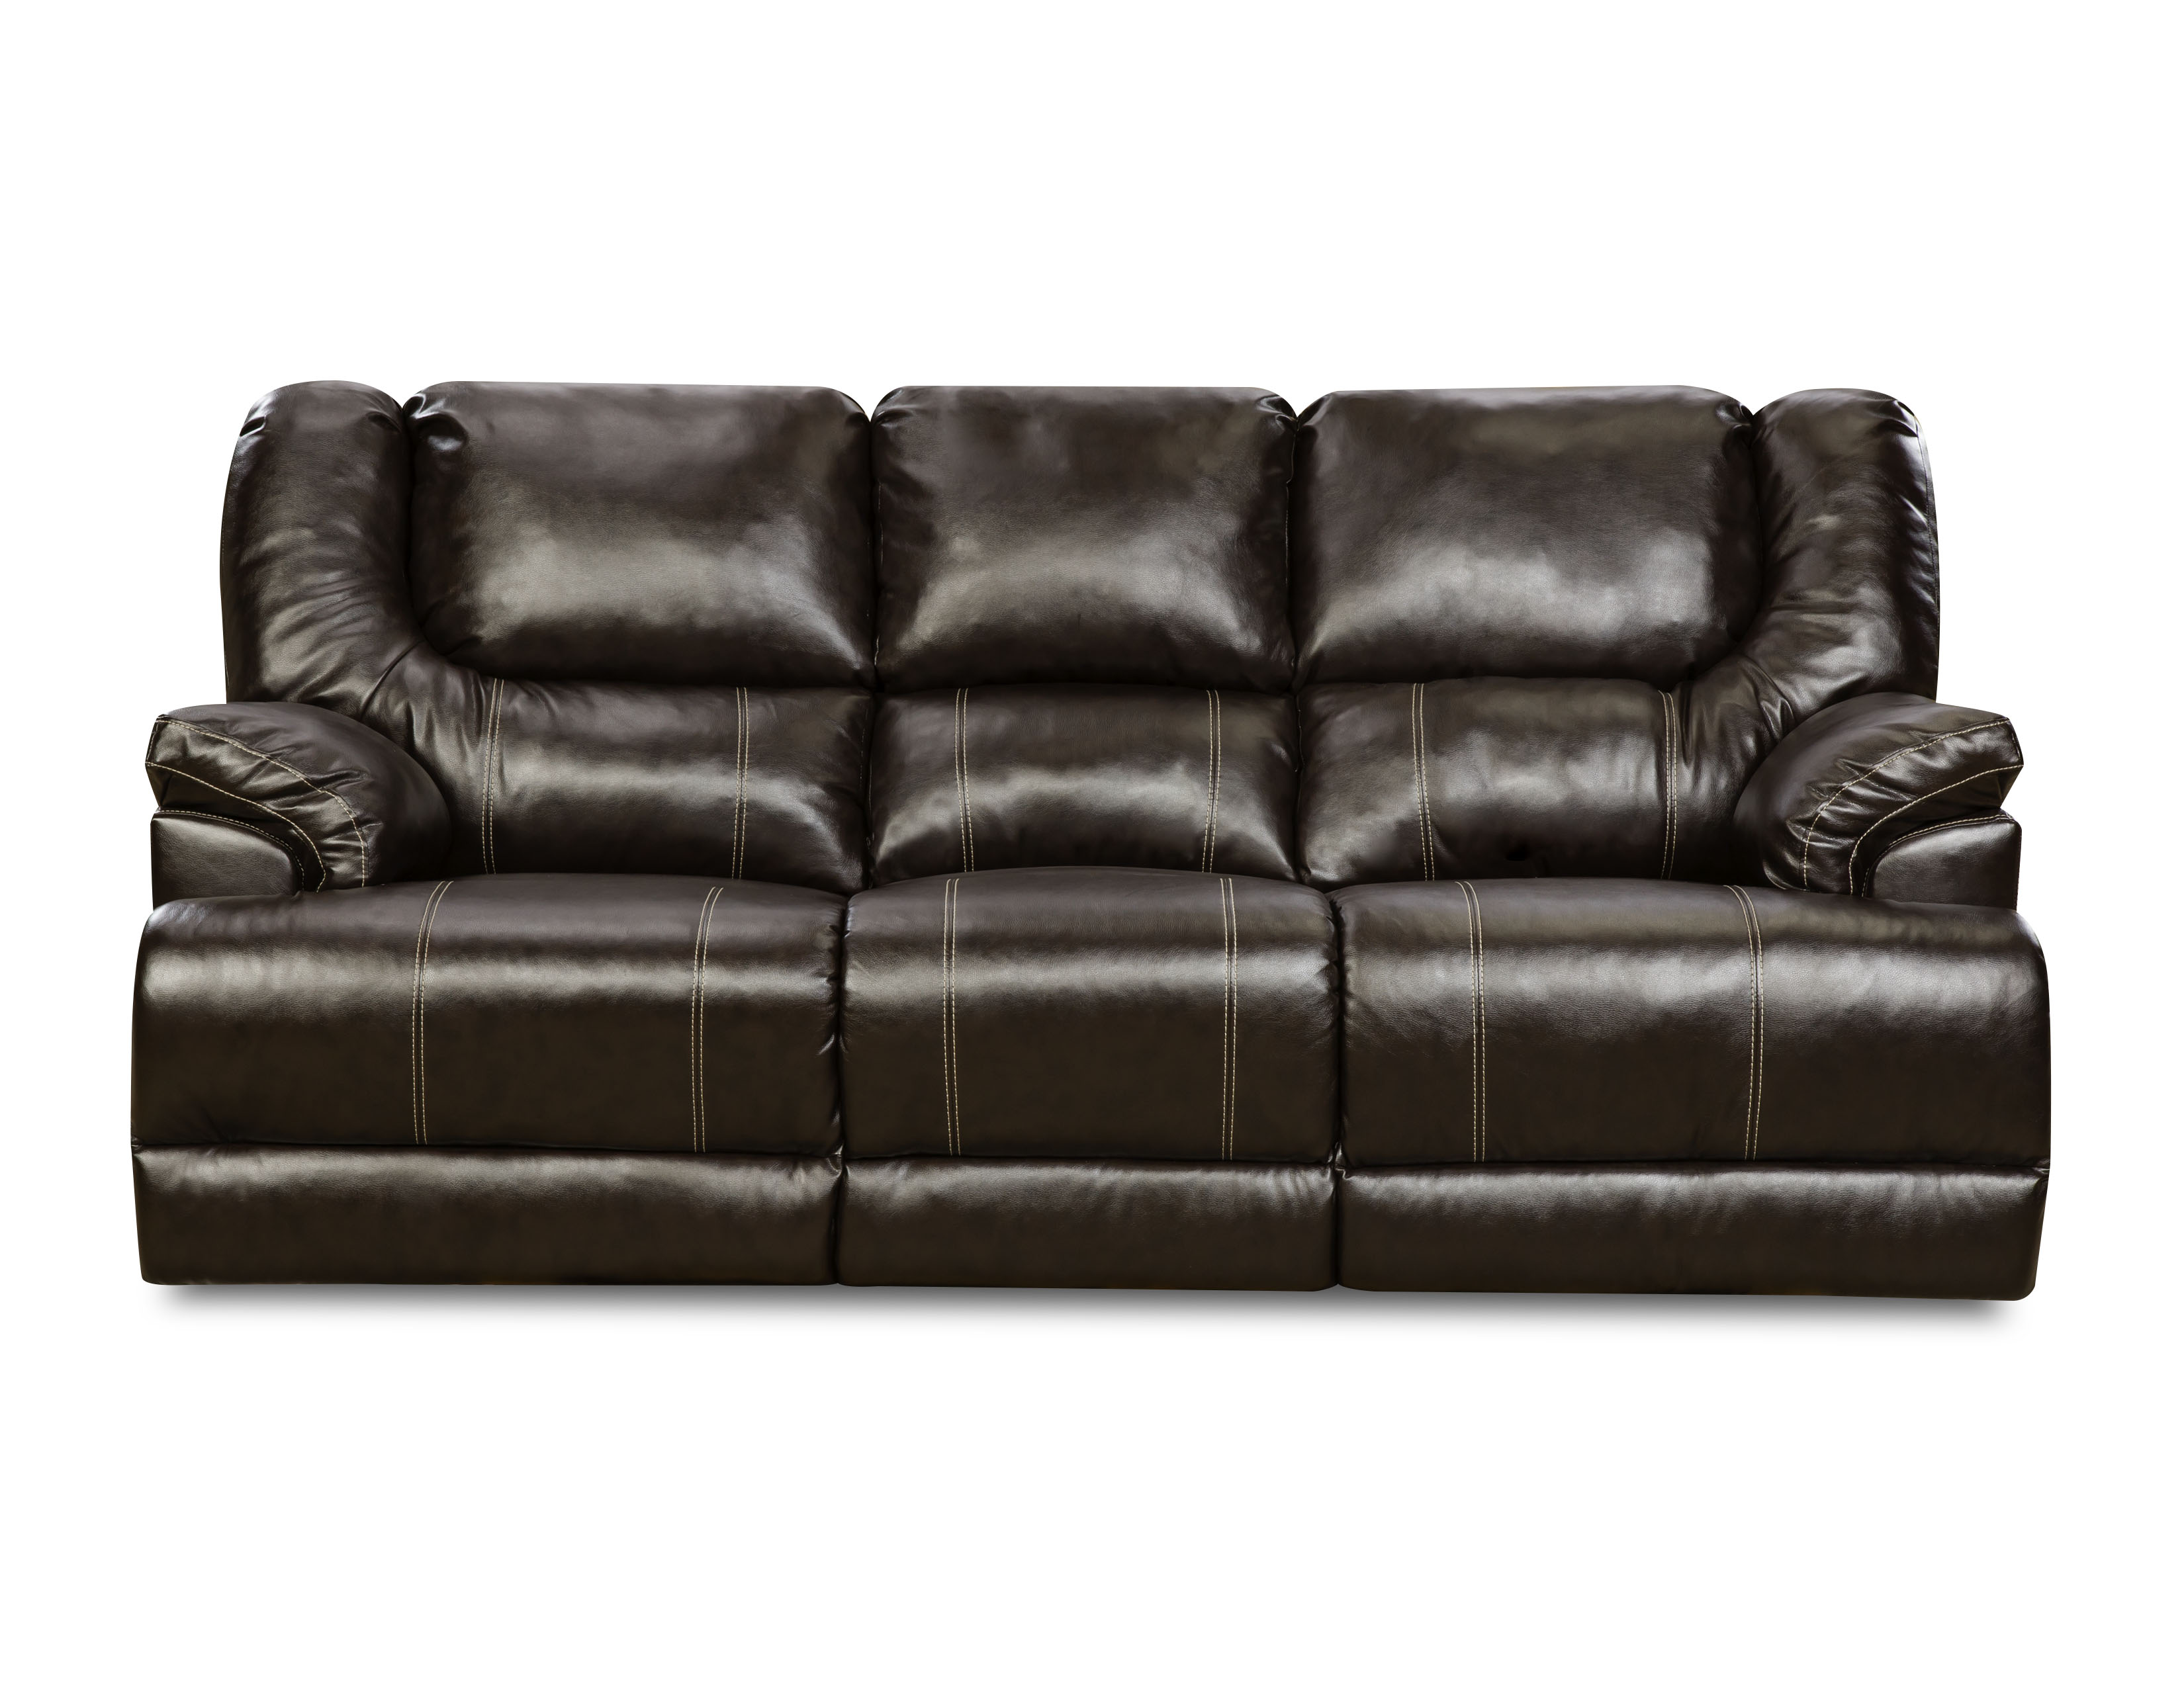 sears outlet bean bag chairs overstuffed chair cover sofas 5034 br wisc sofa wisconsin chocolate